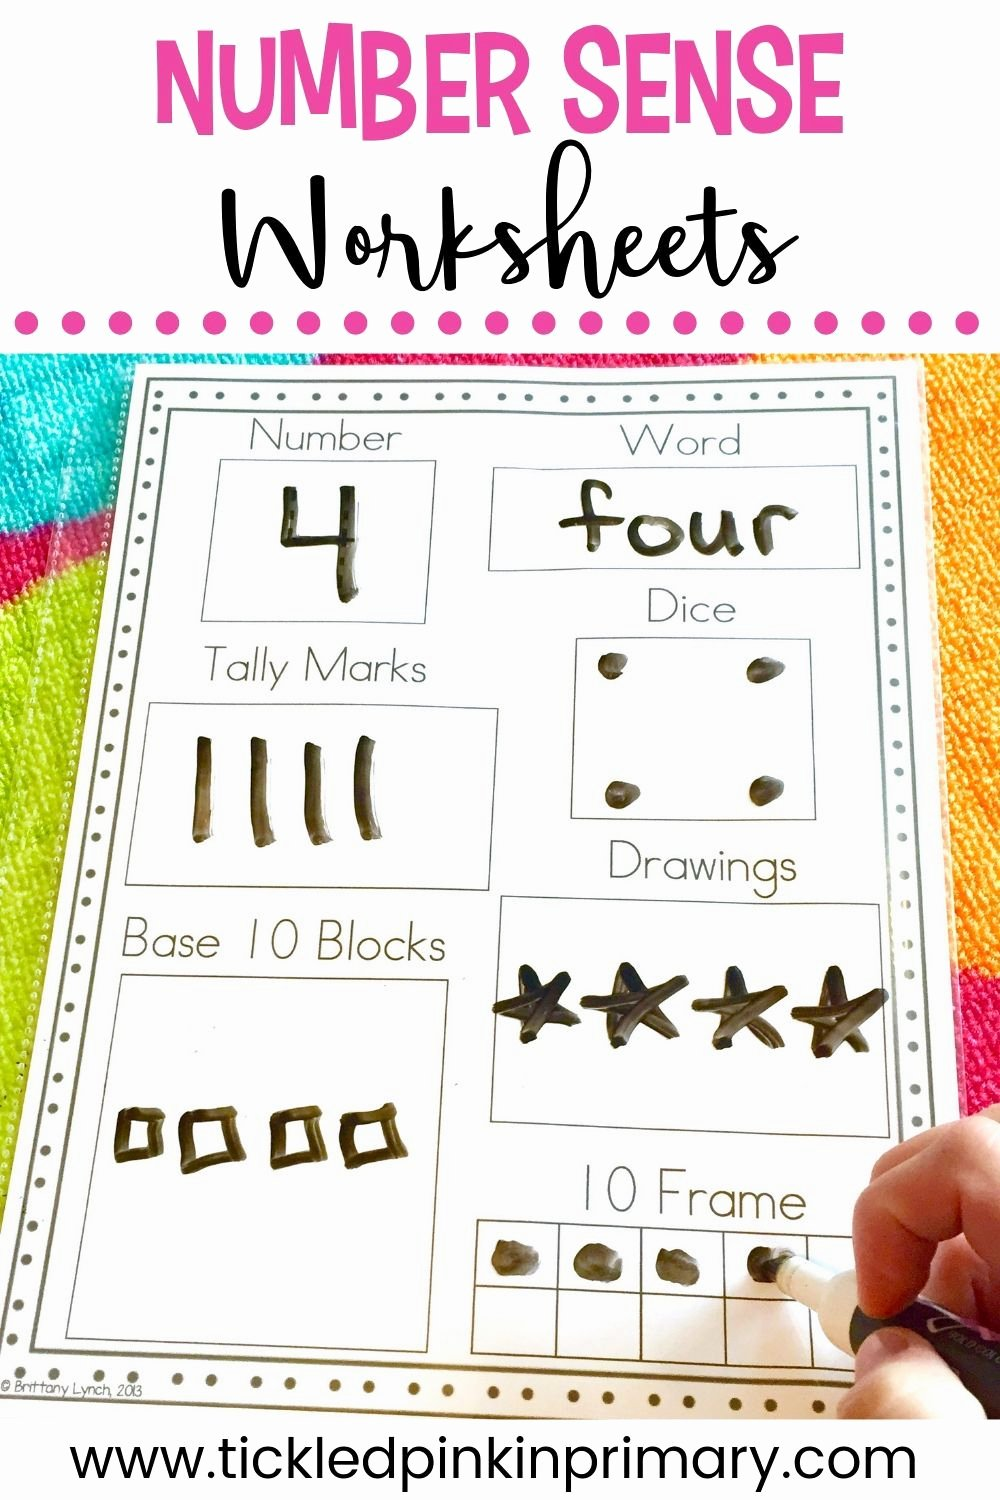 Number Sense Worksheets for Preschoolers Ideas Number Sense Activities for Kindergarten